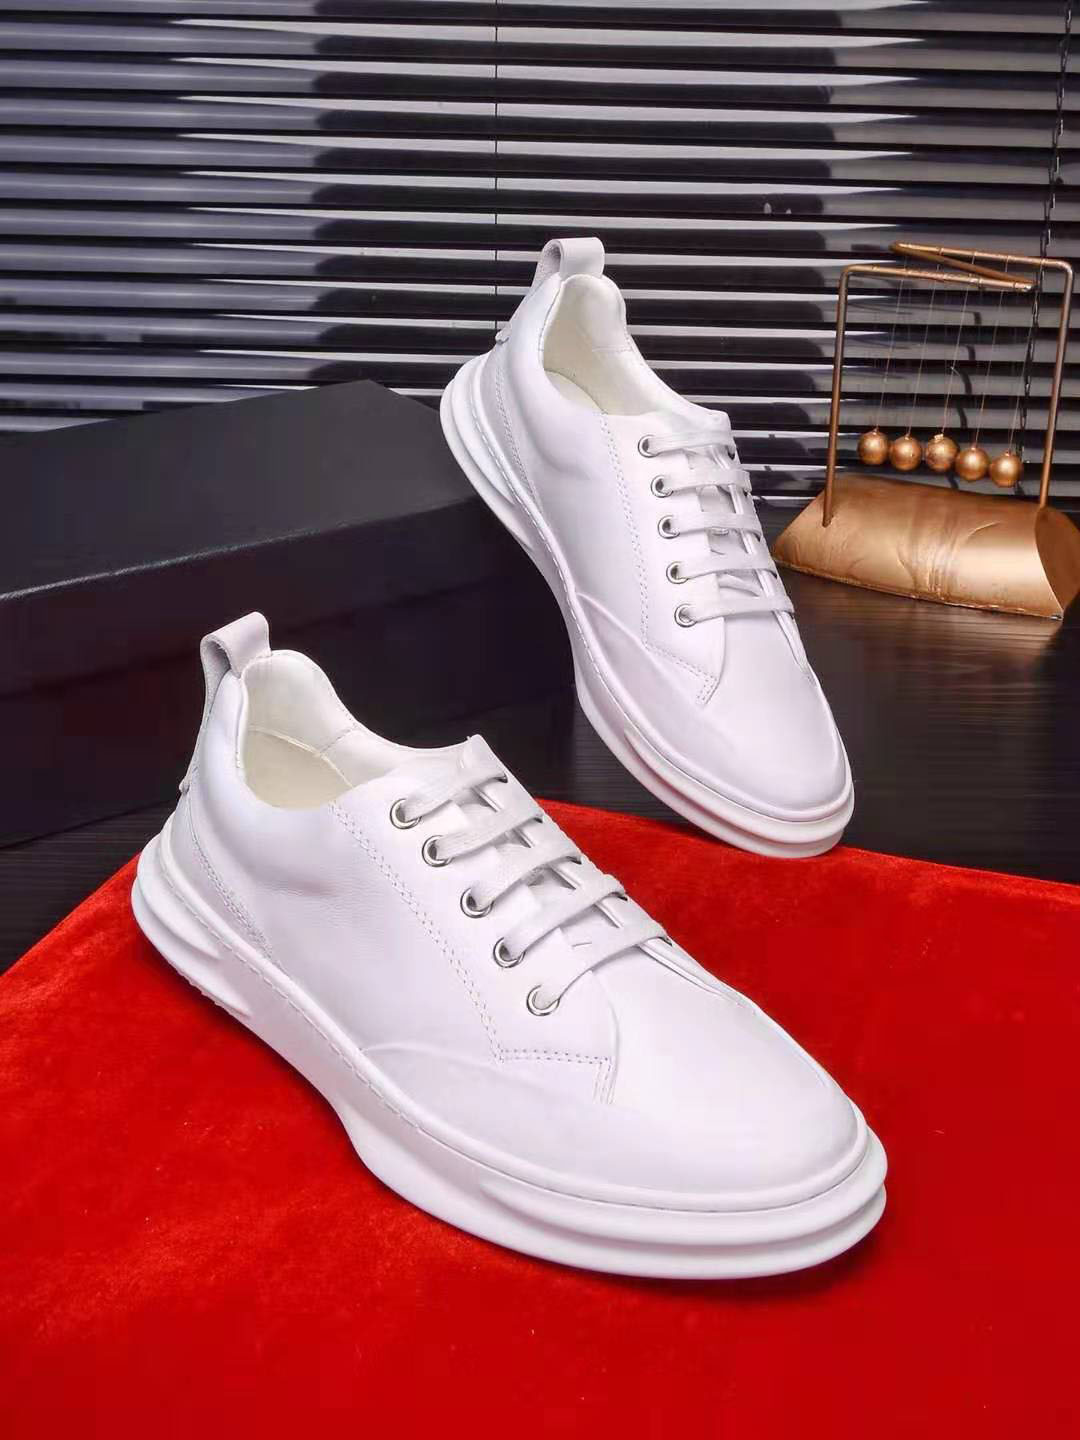 Summer 2019 New Small White Shoes Trend Leather Thick Bottom Shoes Men s Breathable and Odor proof Fashion Leisure Shoes Sports Men s Trend